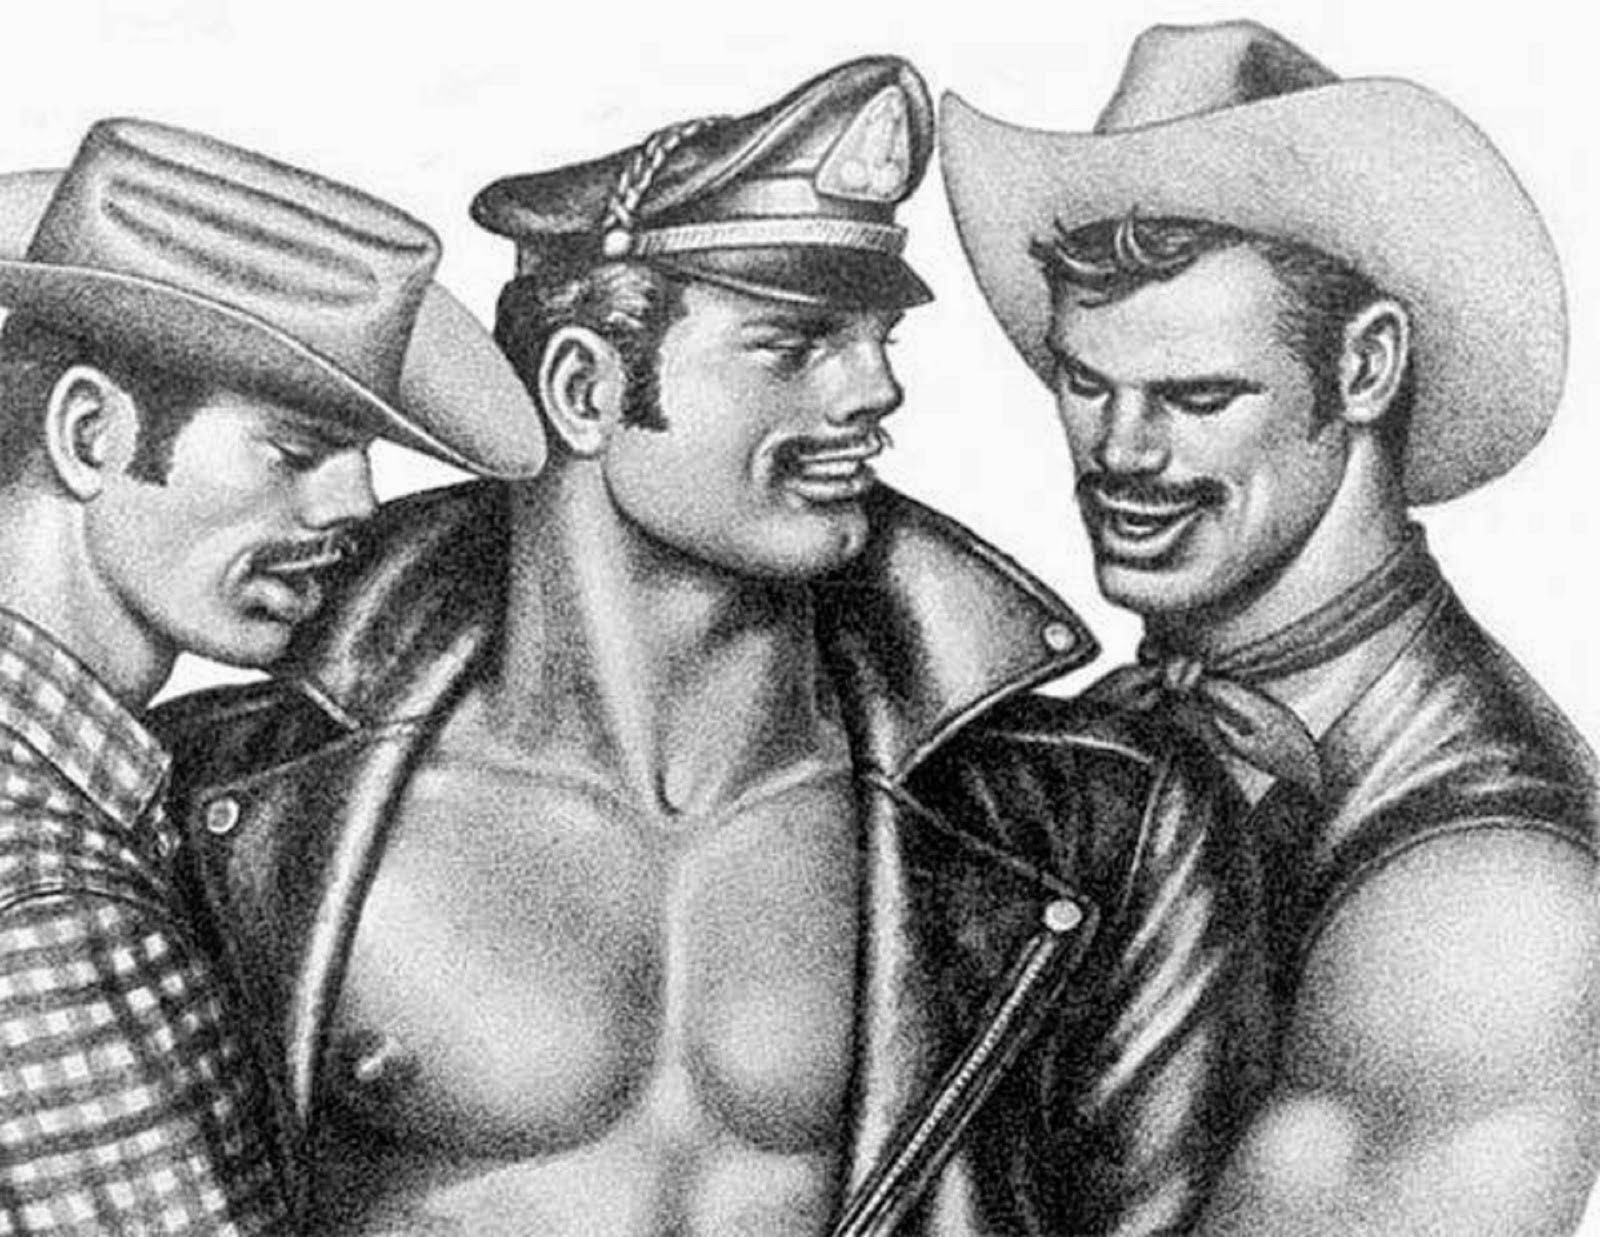 Tom of finland clipart graphic royalty free stock 17 Best images about Sleaze ideas on Pinterest | Finland, Bobs and ... graphic royalty free stock